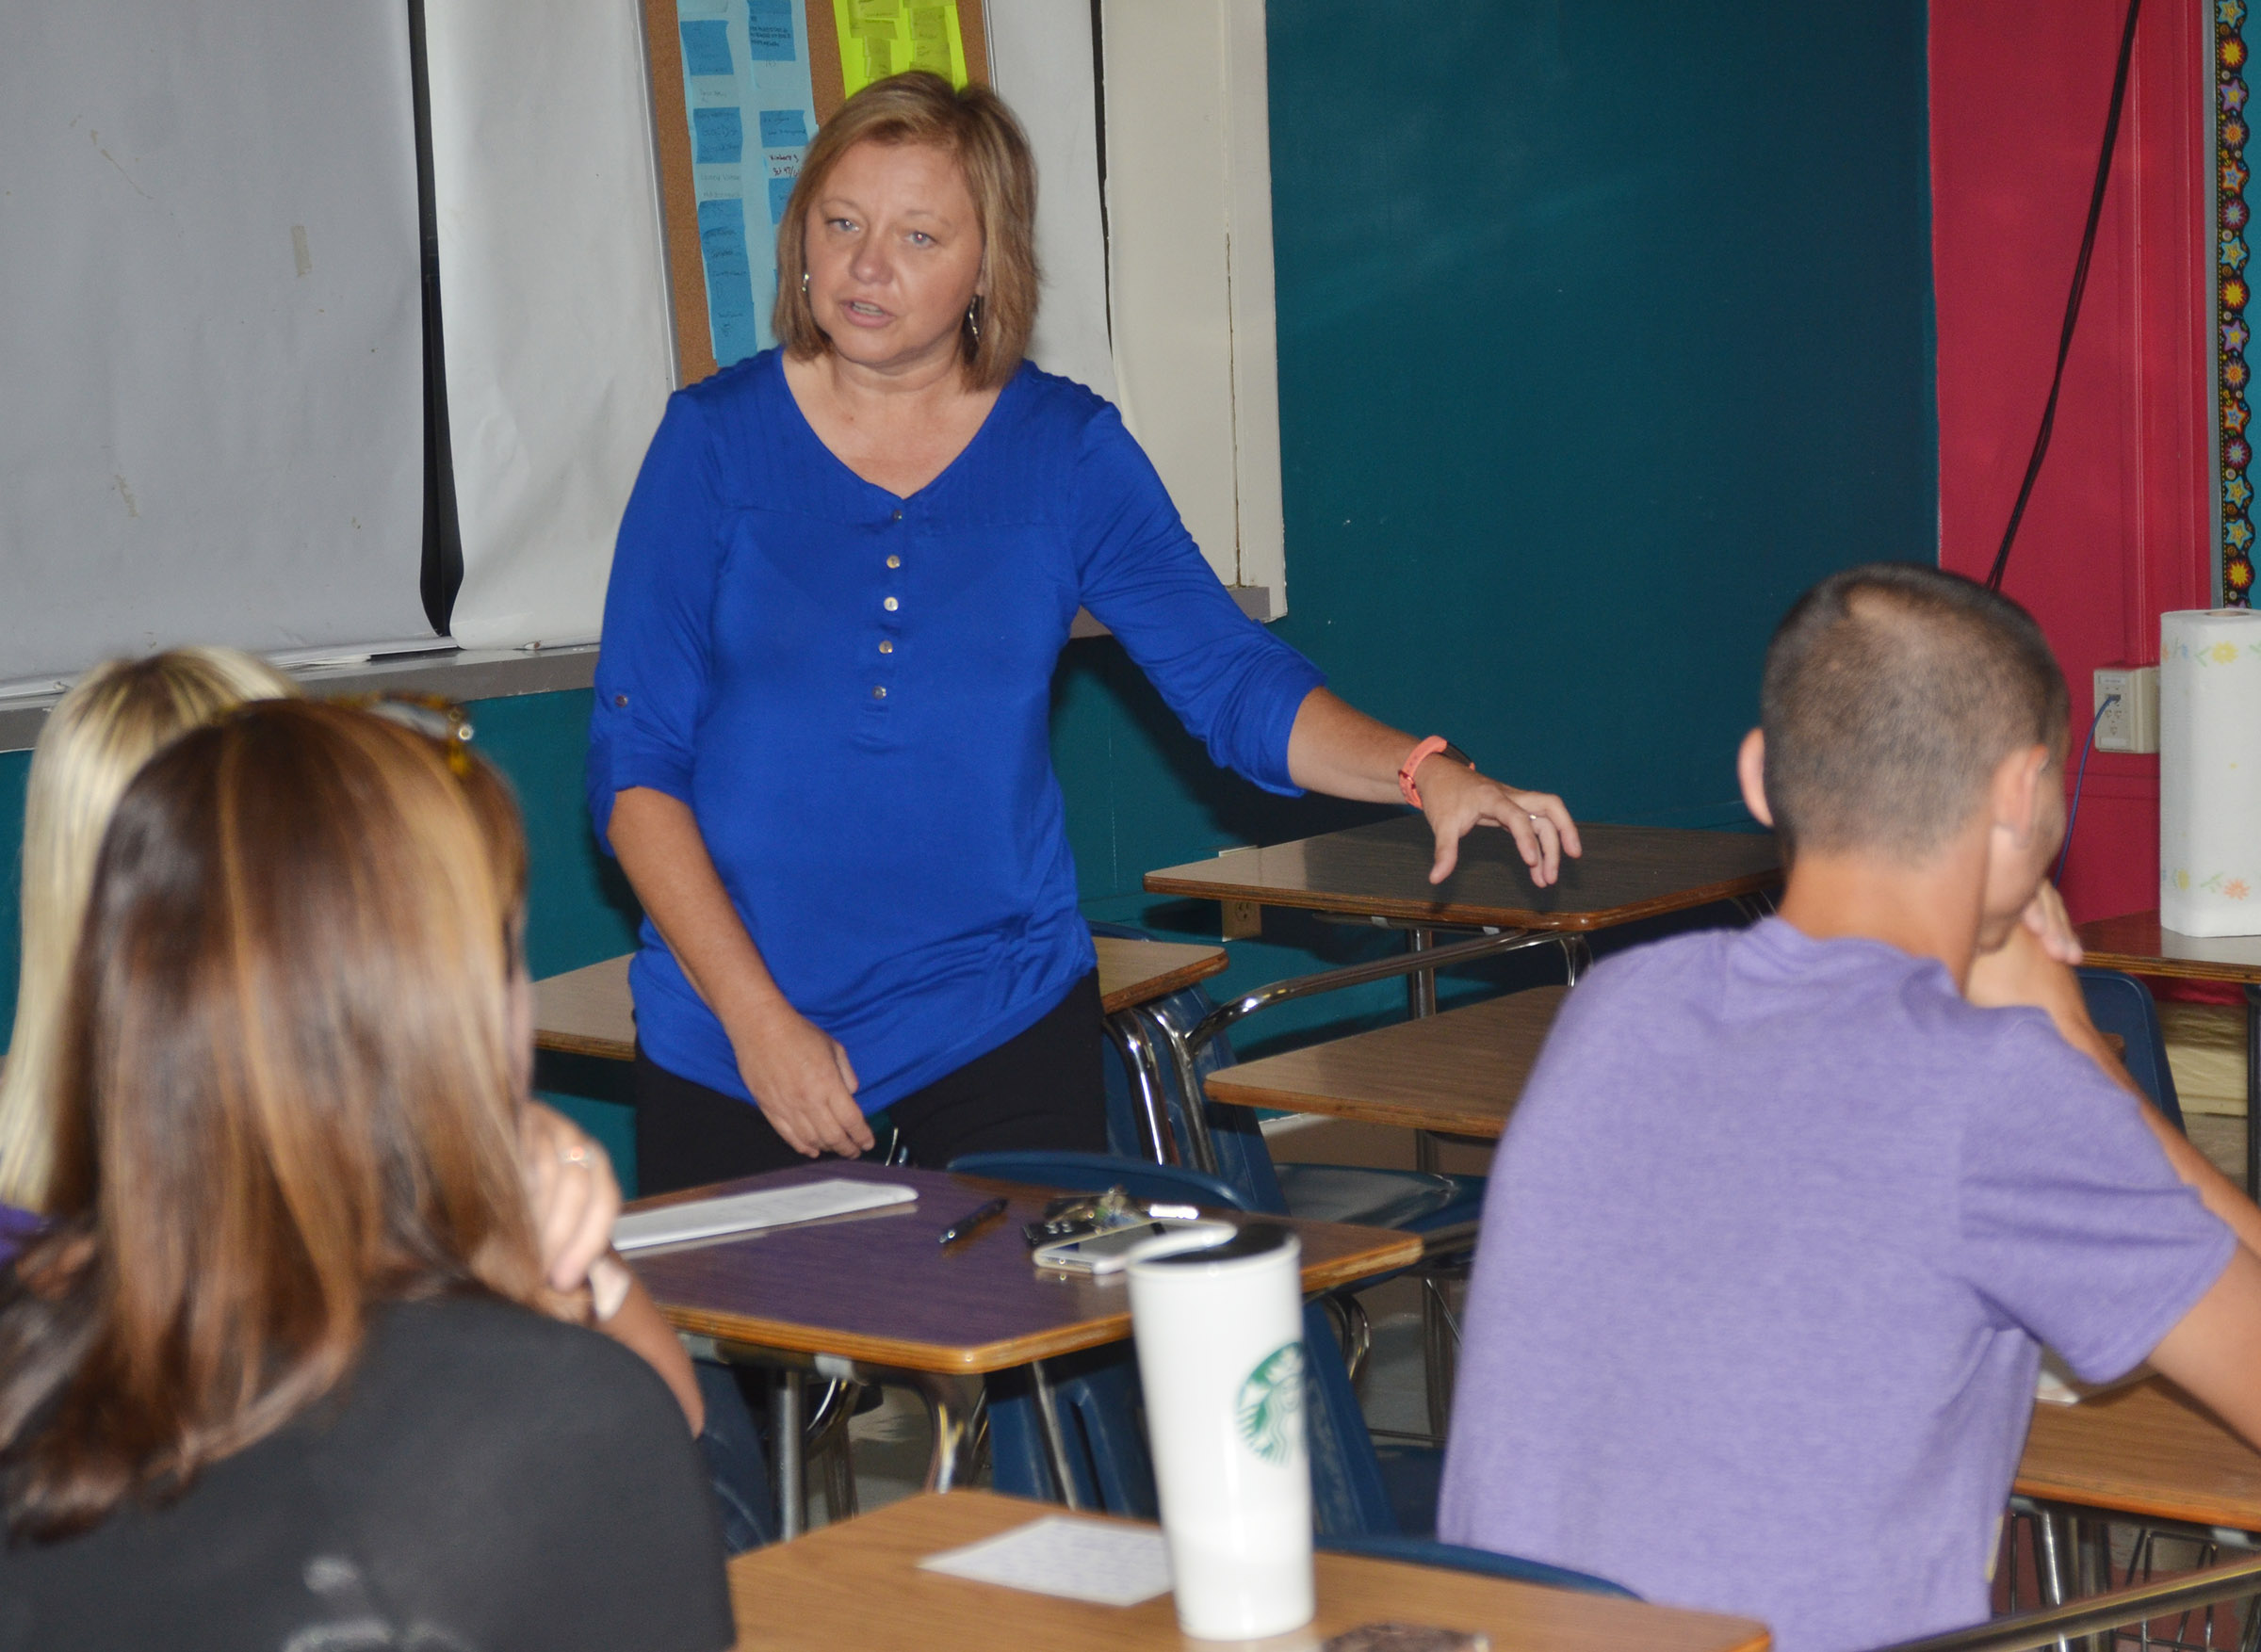 CMS teacher Sharon Harris teaches a session about classroom routines.